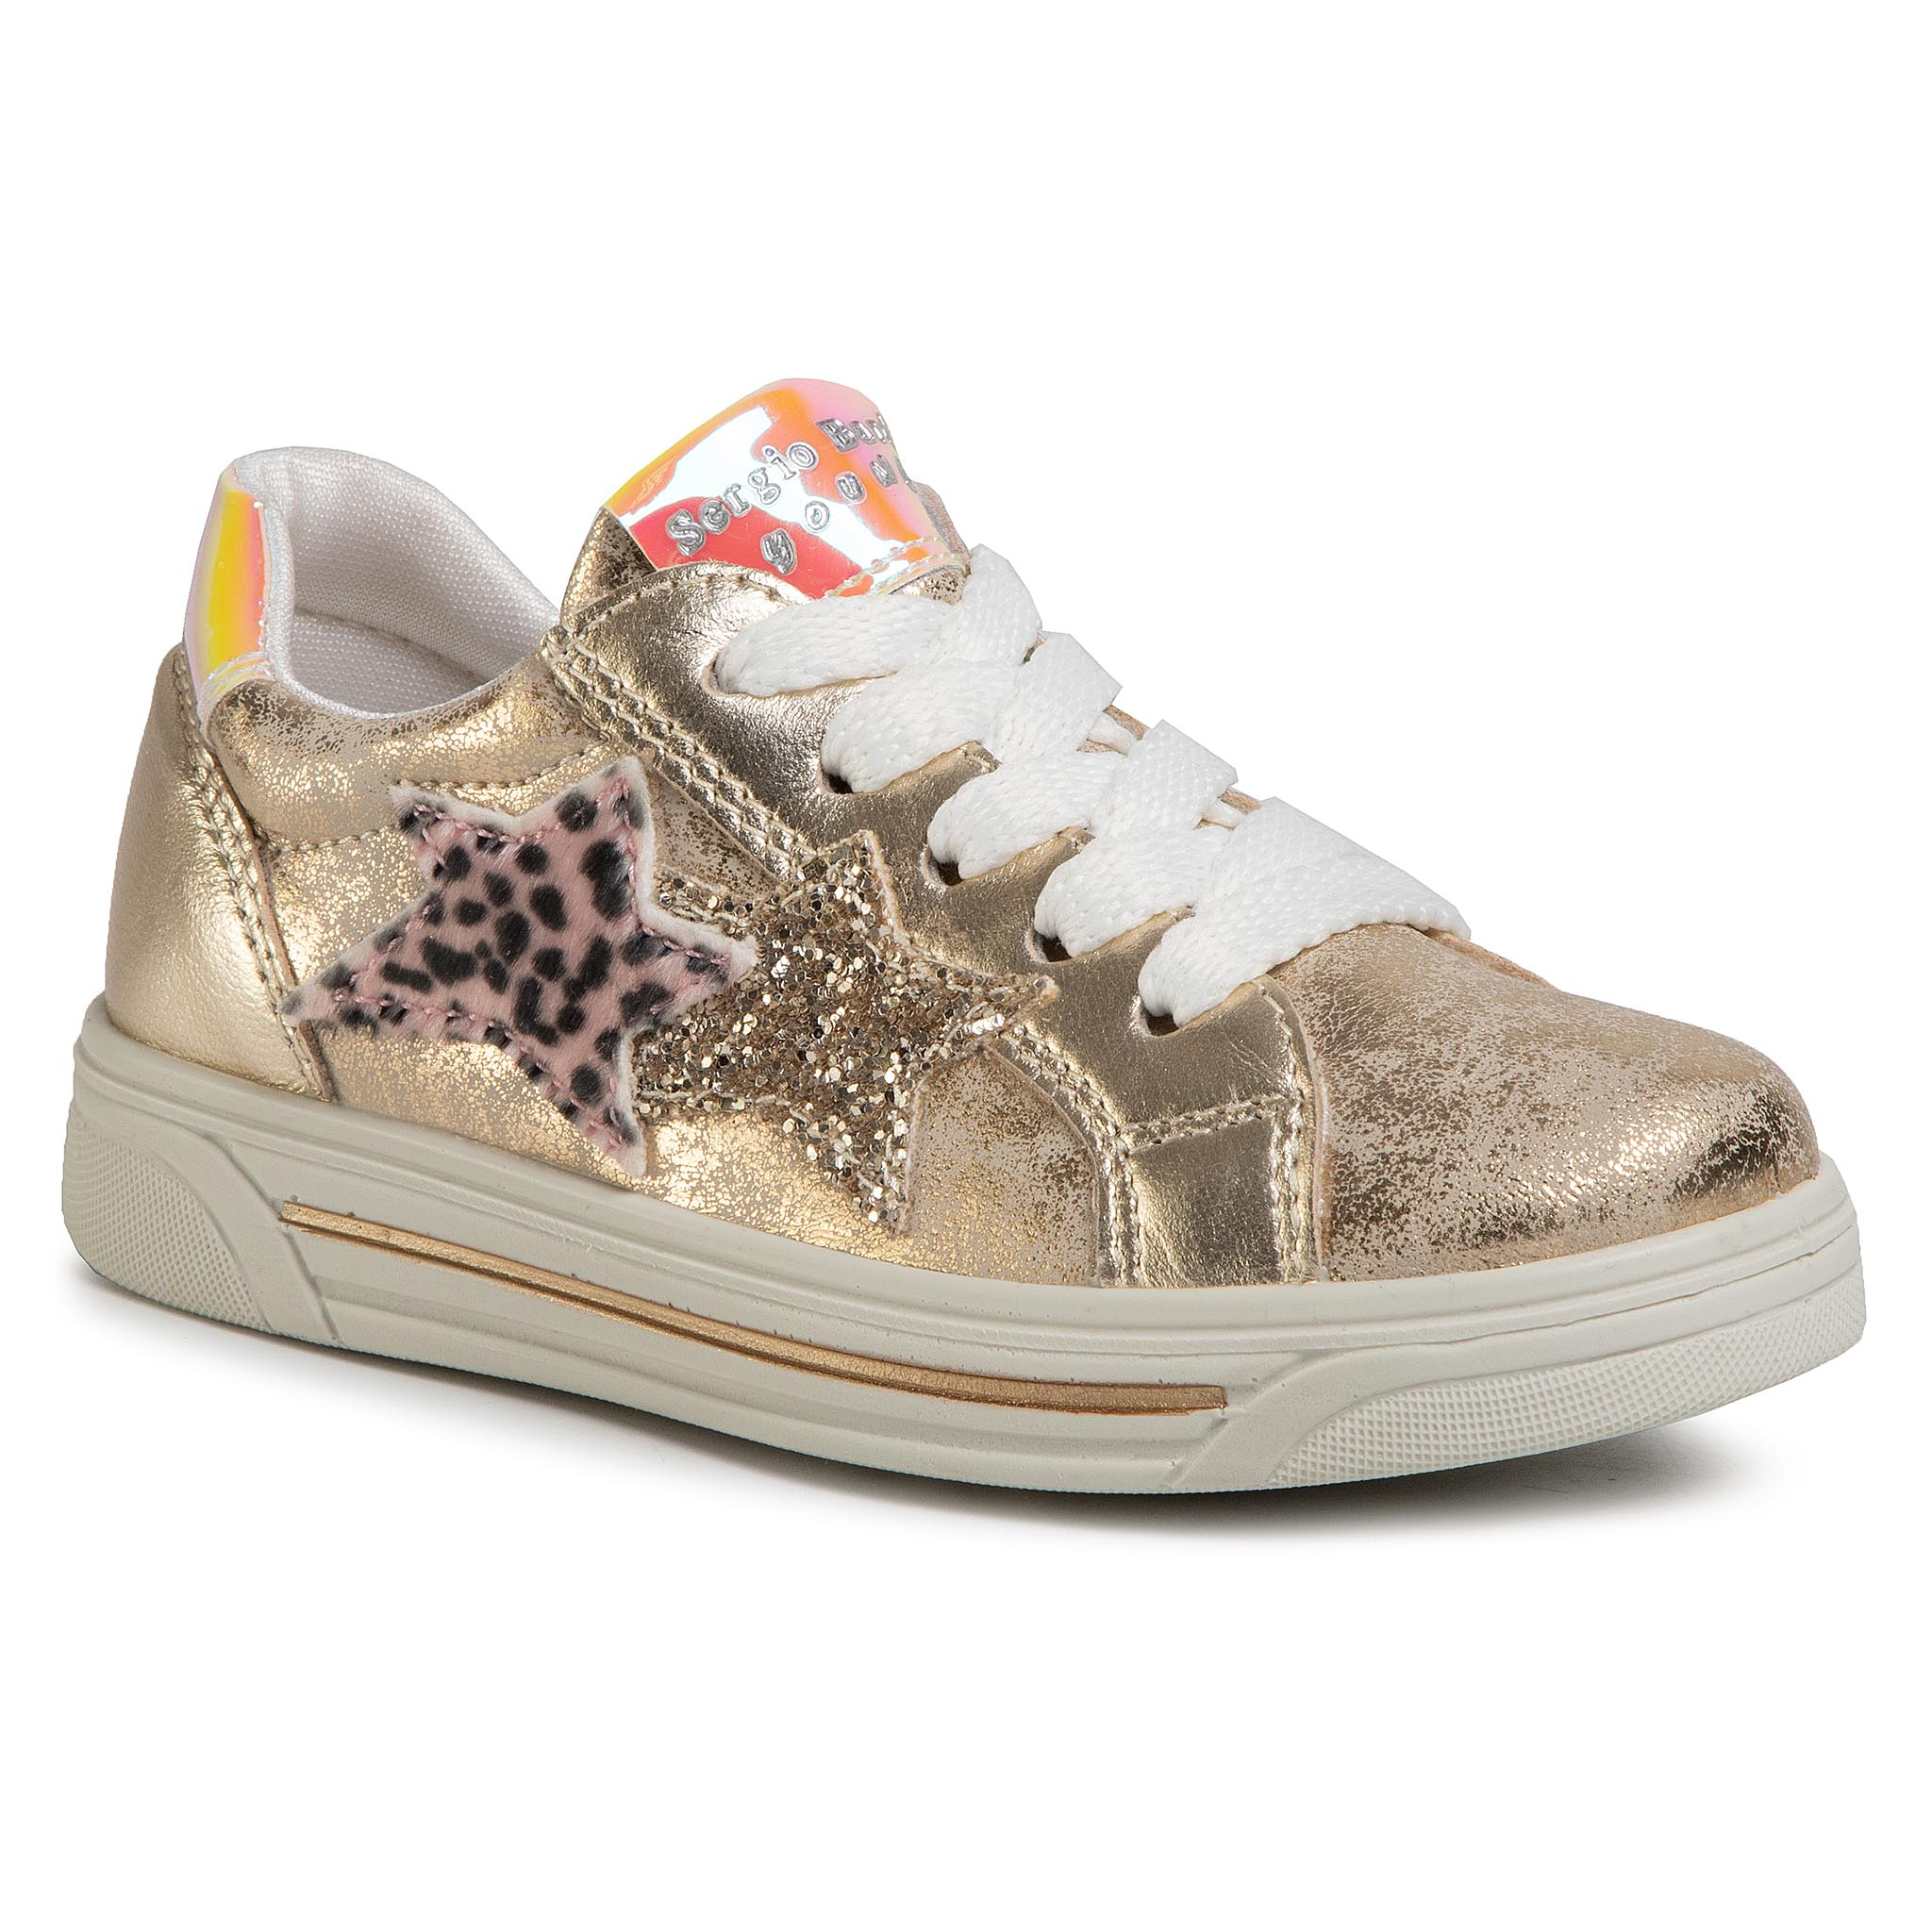 Sneakers SERGIO BARDI YOUNG - SBY-02-03-000026 611